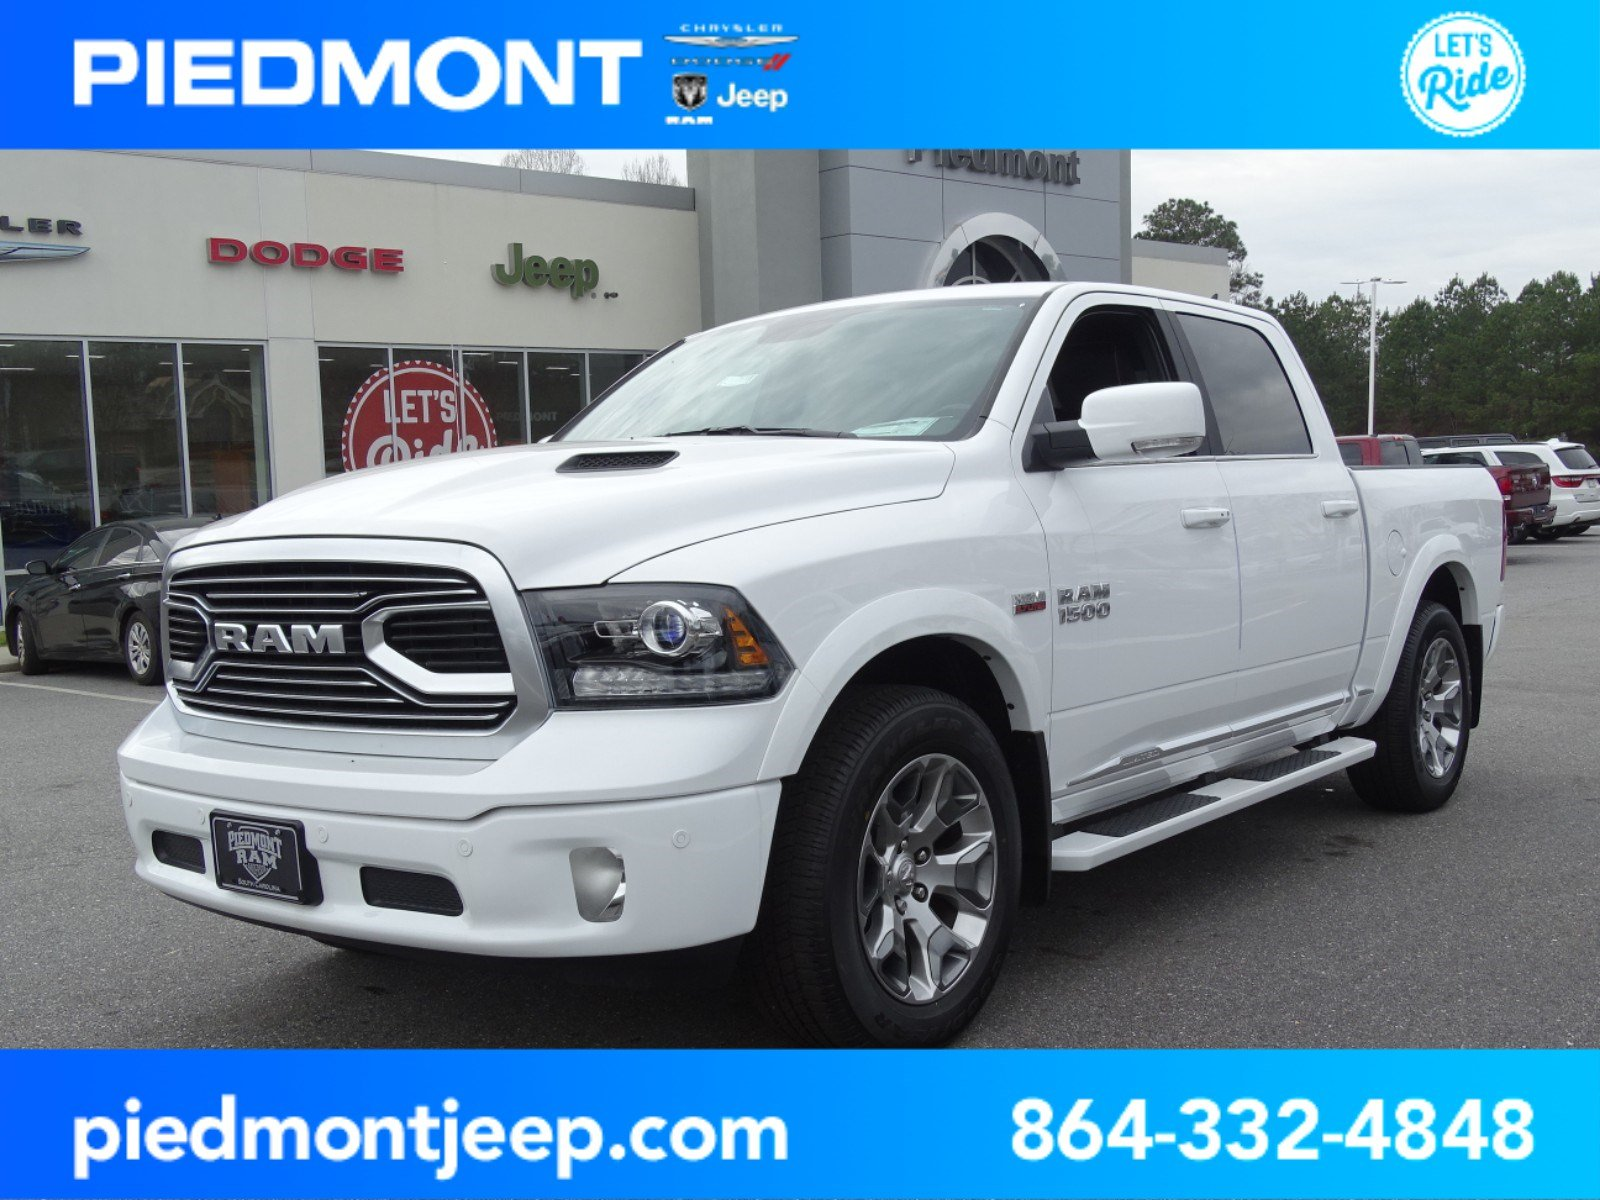 New 2018 Ram 1500 Limited Crew Cab In Anderson D87519 Piedmont 1997 Nissan Pick Up M Air Flow Sensor